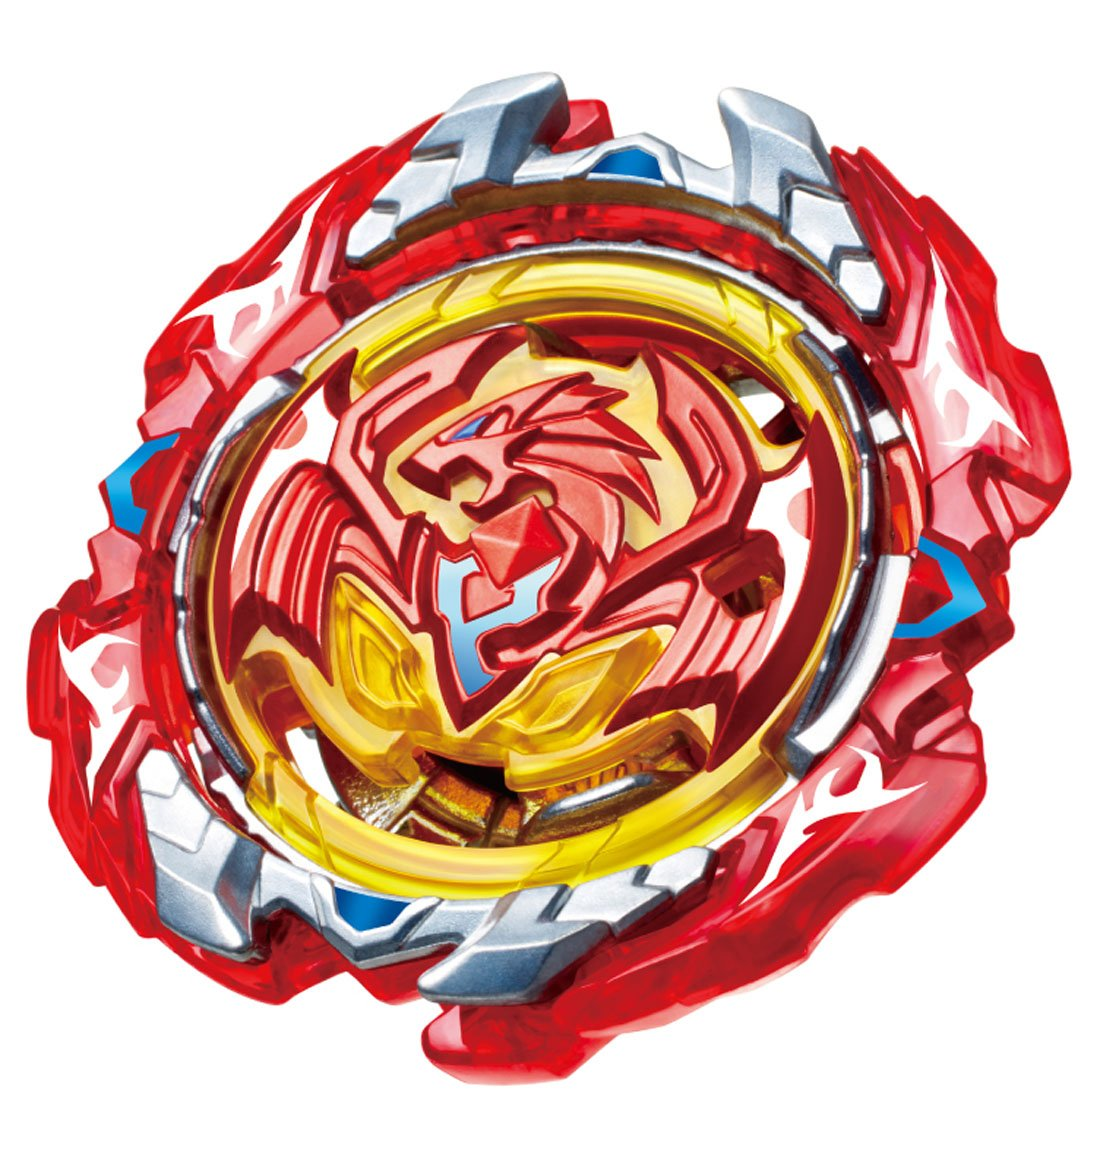 Top 10 Best Beyblade Toys in the World 2020 - Buyer's Guide 1